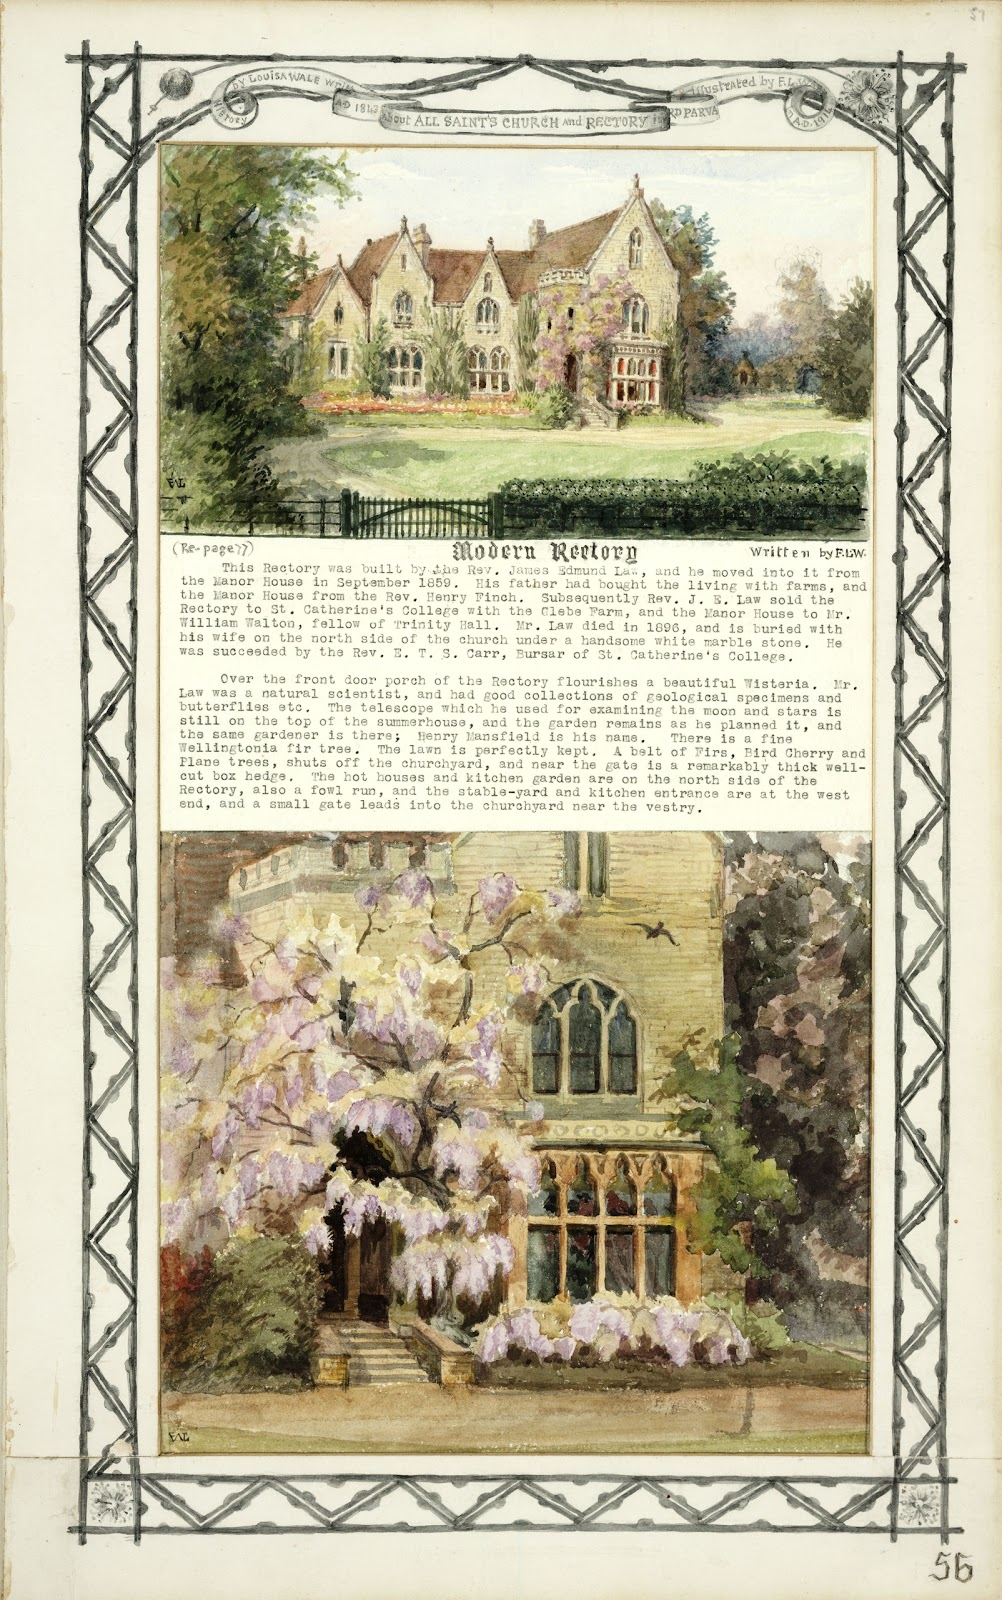 A Record of Shelford Parva by Fanny Wale P56 fo. 57, page 56: A coloured watercolour of 'Modern Rectory' and description of it with a larger watercolour of the windows and wisteria, within a picture mount [Mount E].  [fo.45, but without the title 'Modern Rectory']